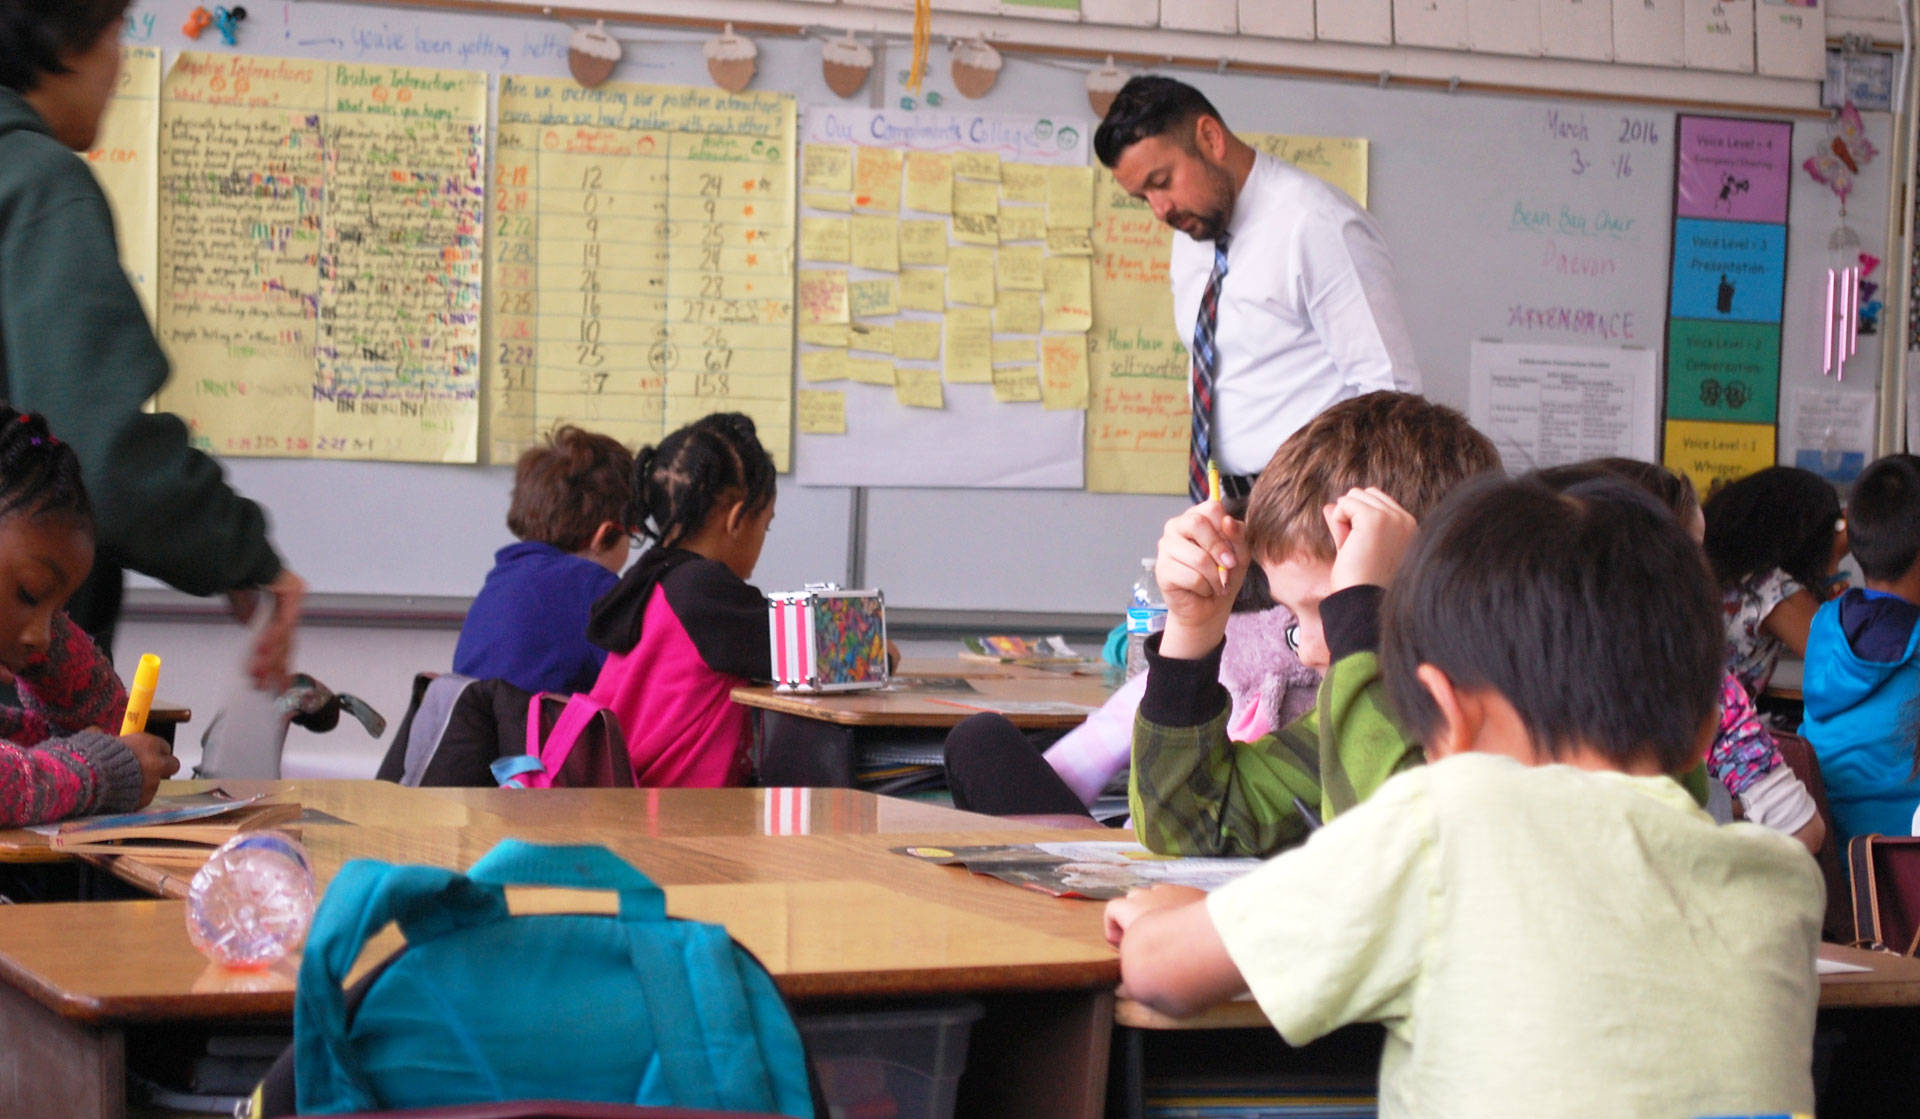 Once the worst performing schools in the state, Oak Ridge Elementary is now a bright spot in an economically depressed neighborhood in Sacramento. Gabriel Salcedo/KQED